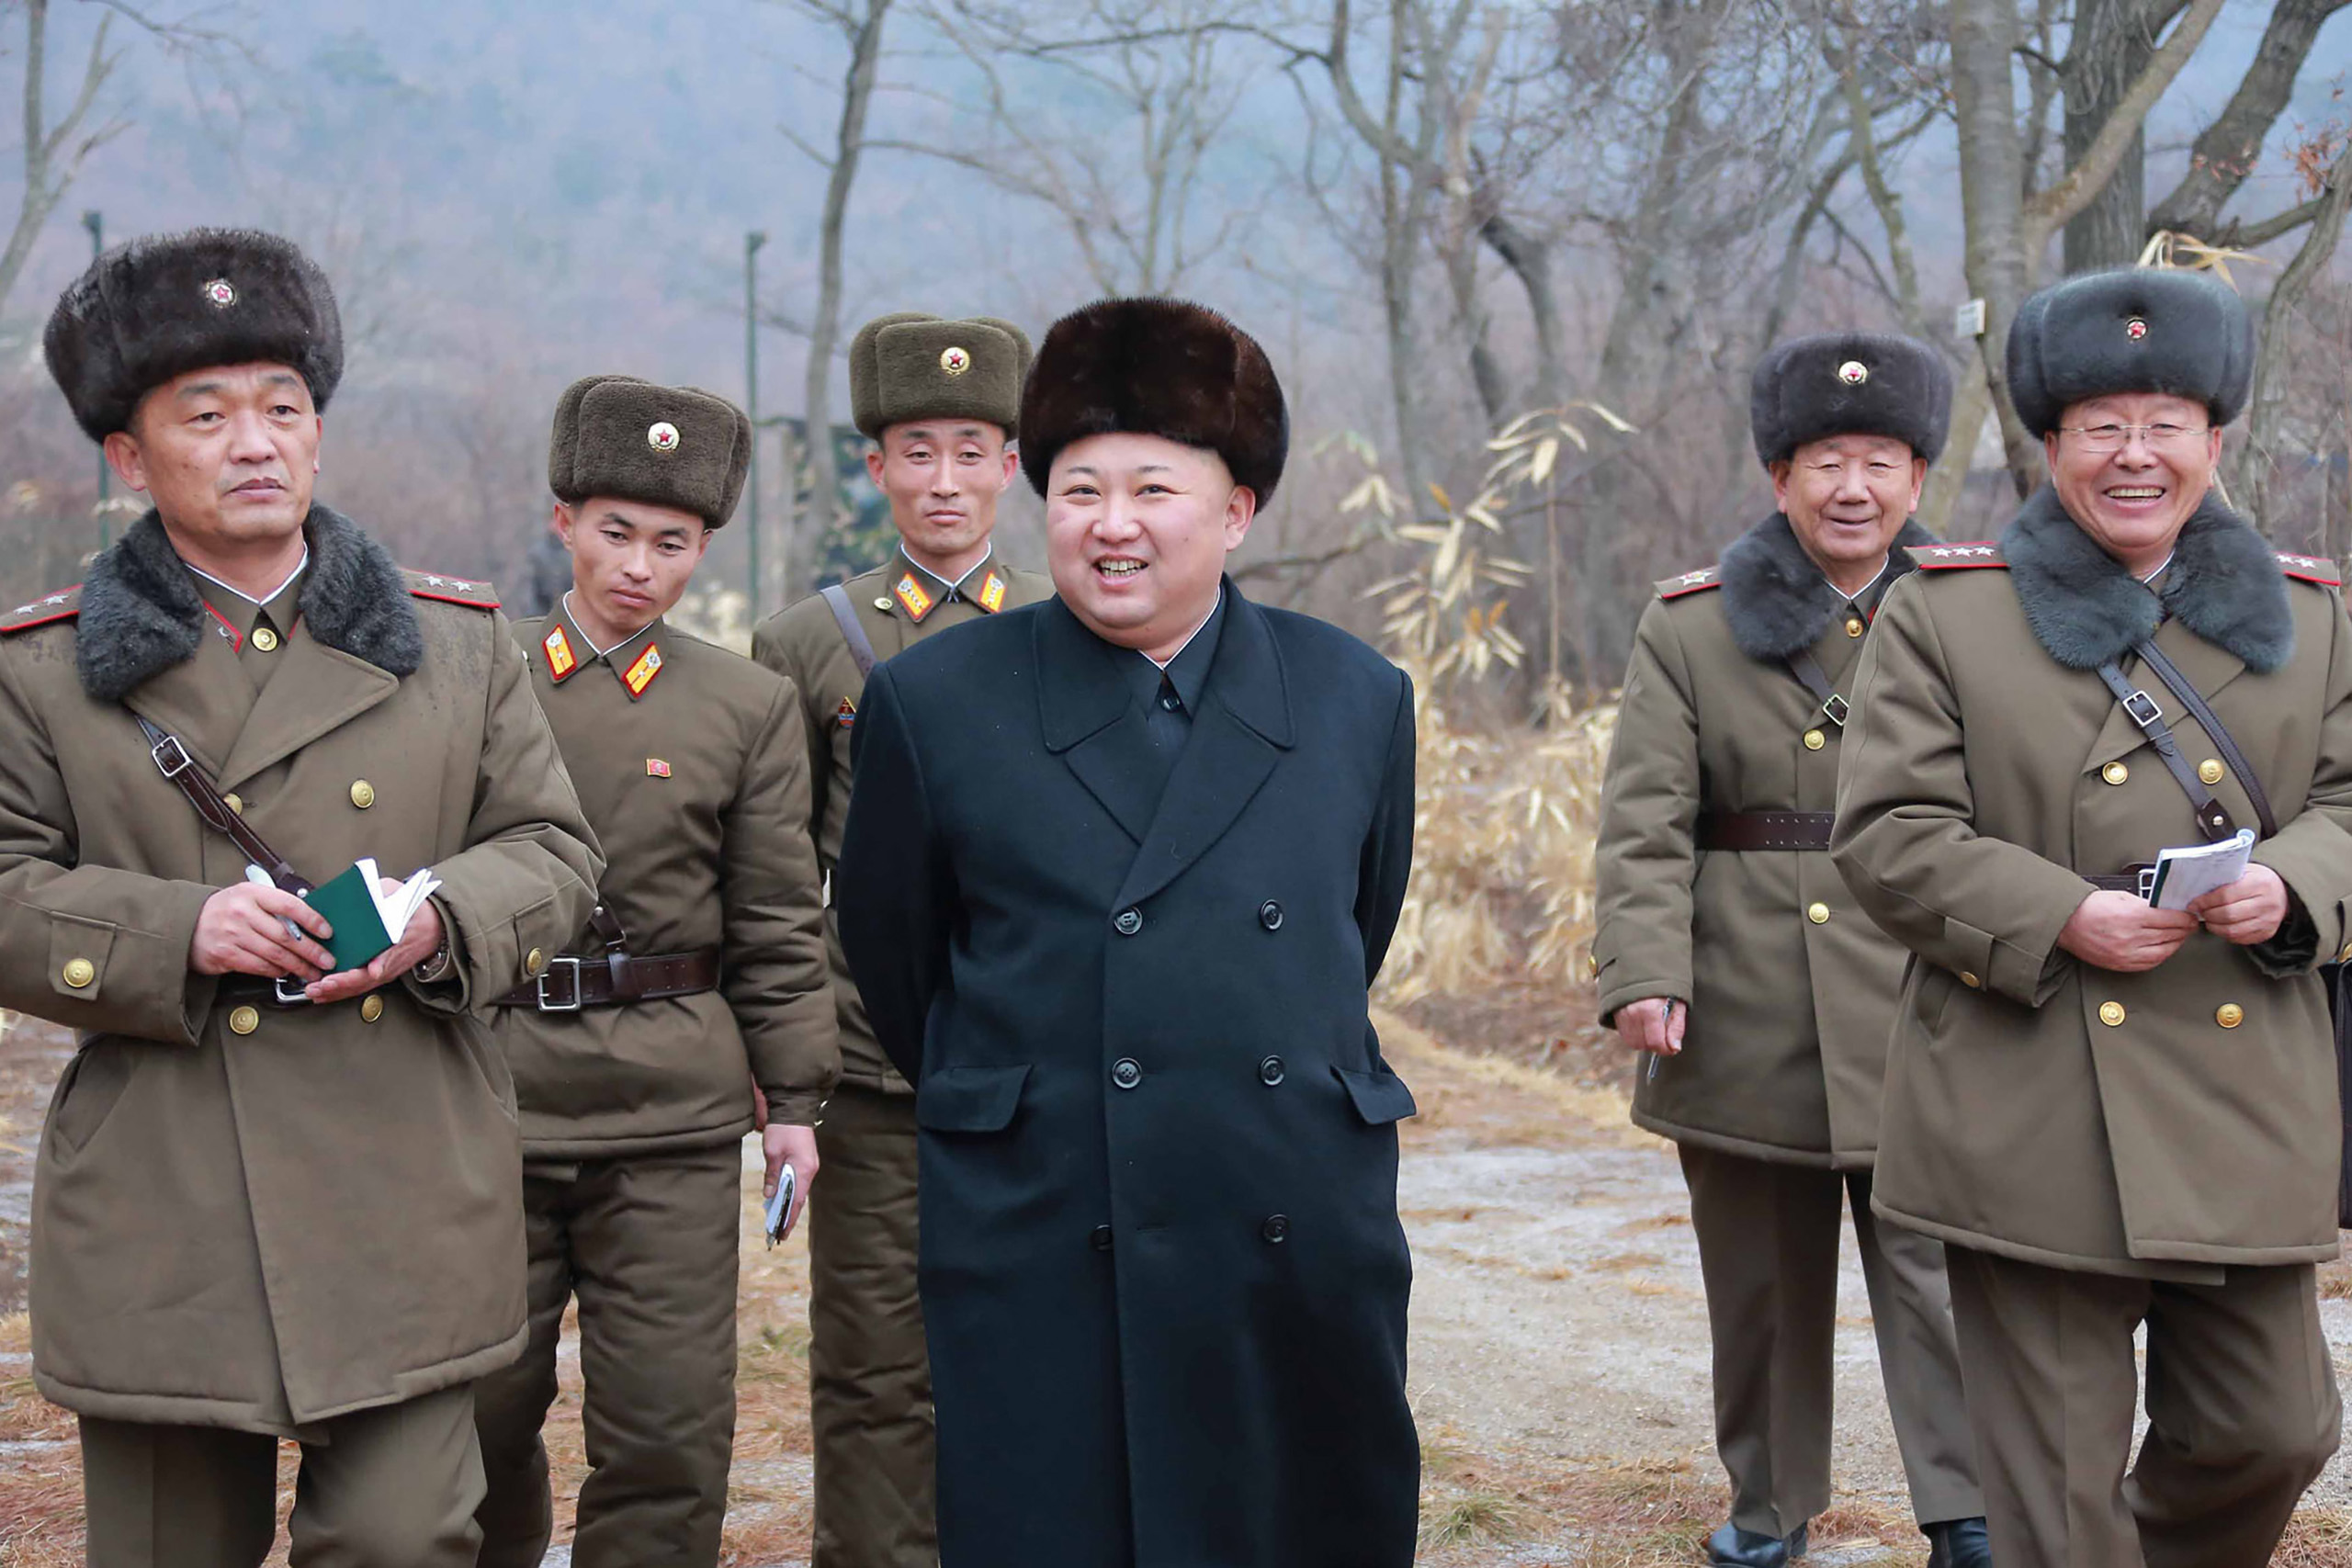 This undated picture released from North Korea's official Korean Central News Agency (KCNA) on Jan. 19, 2017 shows North Korean leader Kim Jong-Un (C) inspecting a sub-unit under KPA Unit 233 at an undisclosed location.